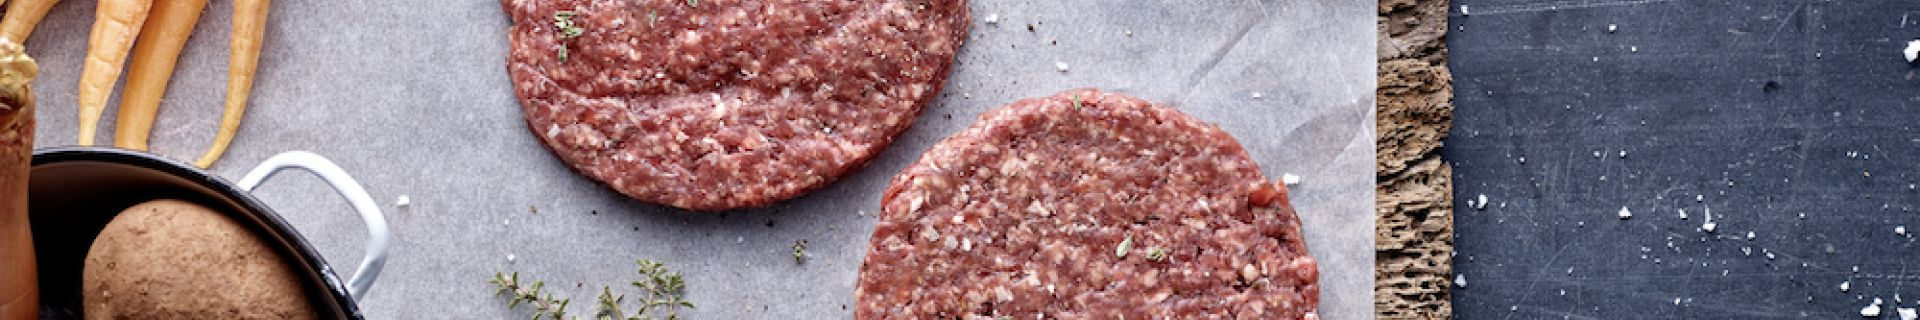 Go Gluten-Free With Our Sausages And Burgers